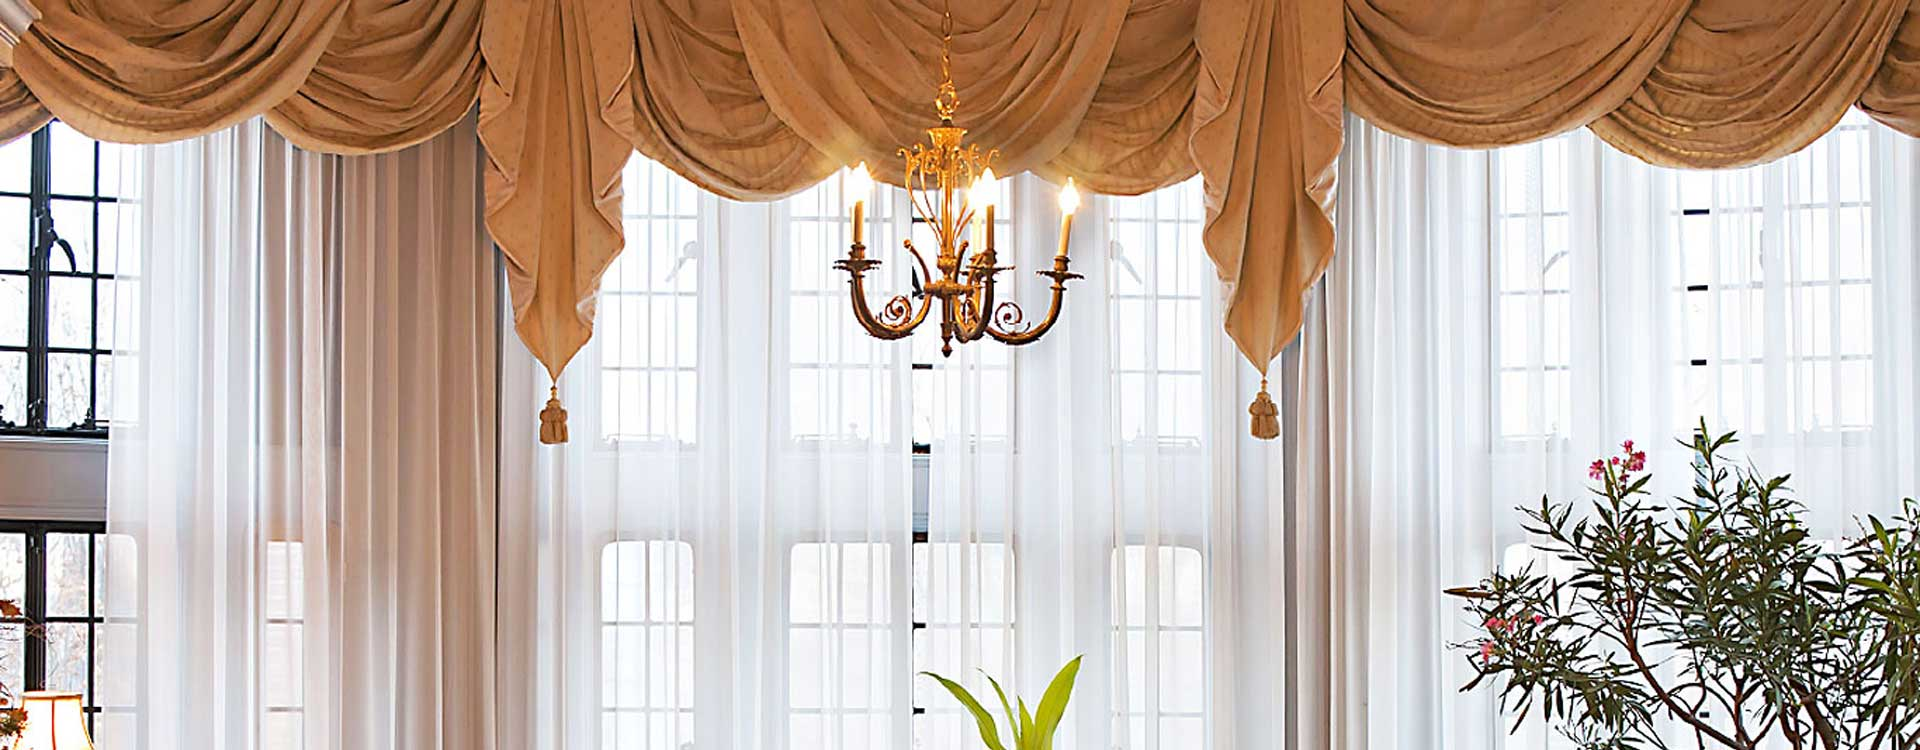 valance wells homeminimalis divine living drapes rc or valances lovable classy room as for curtains interior foralso hang and also blinds with